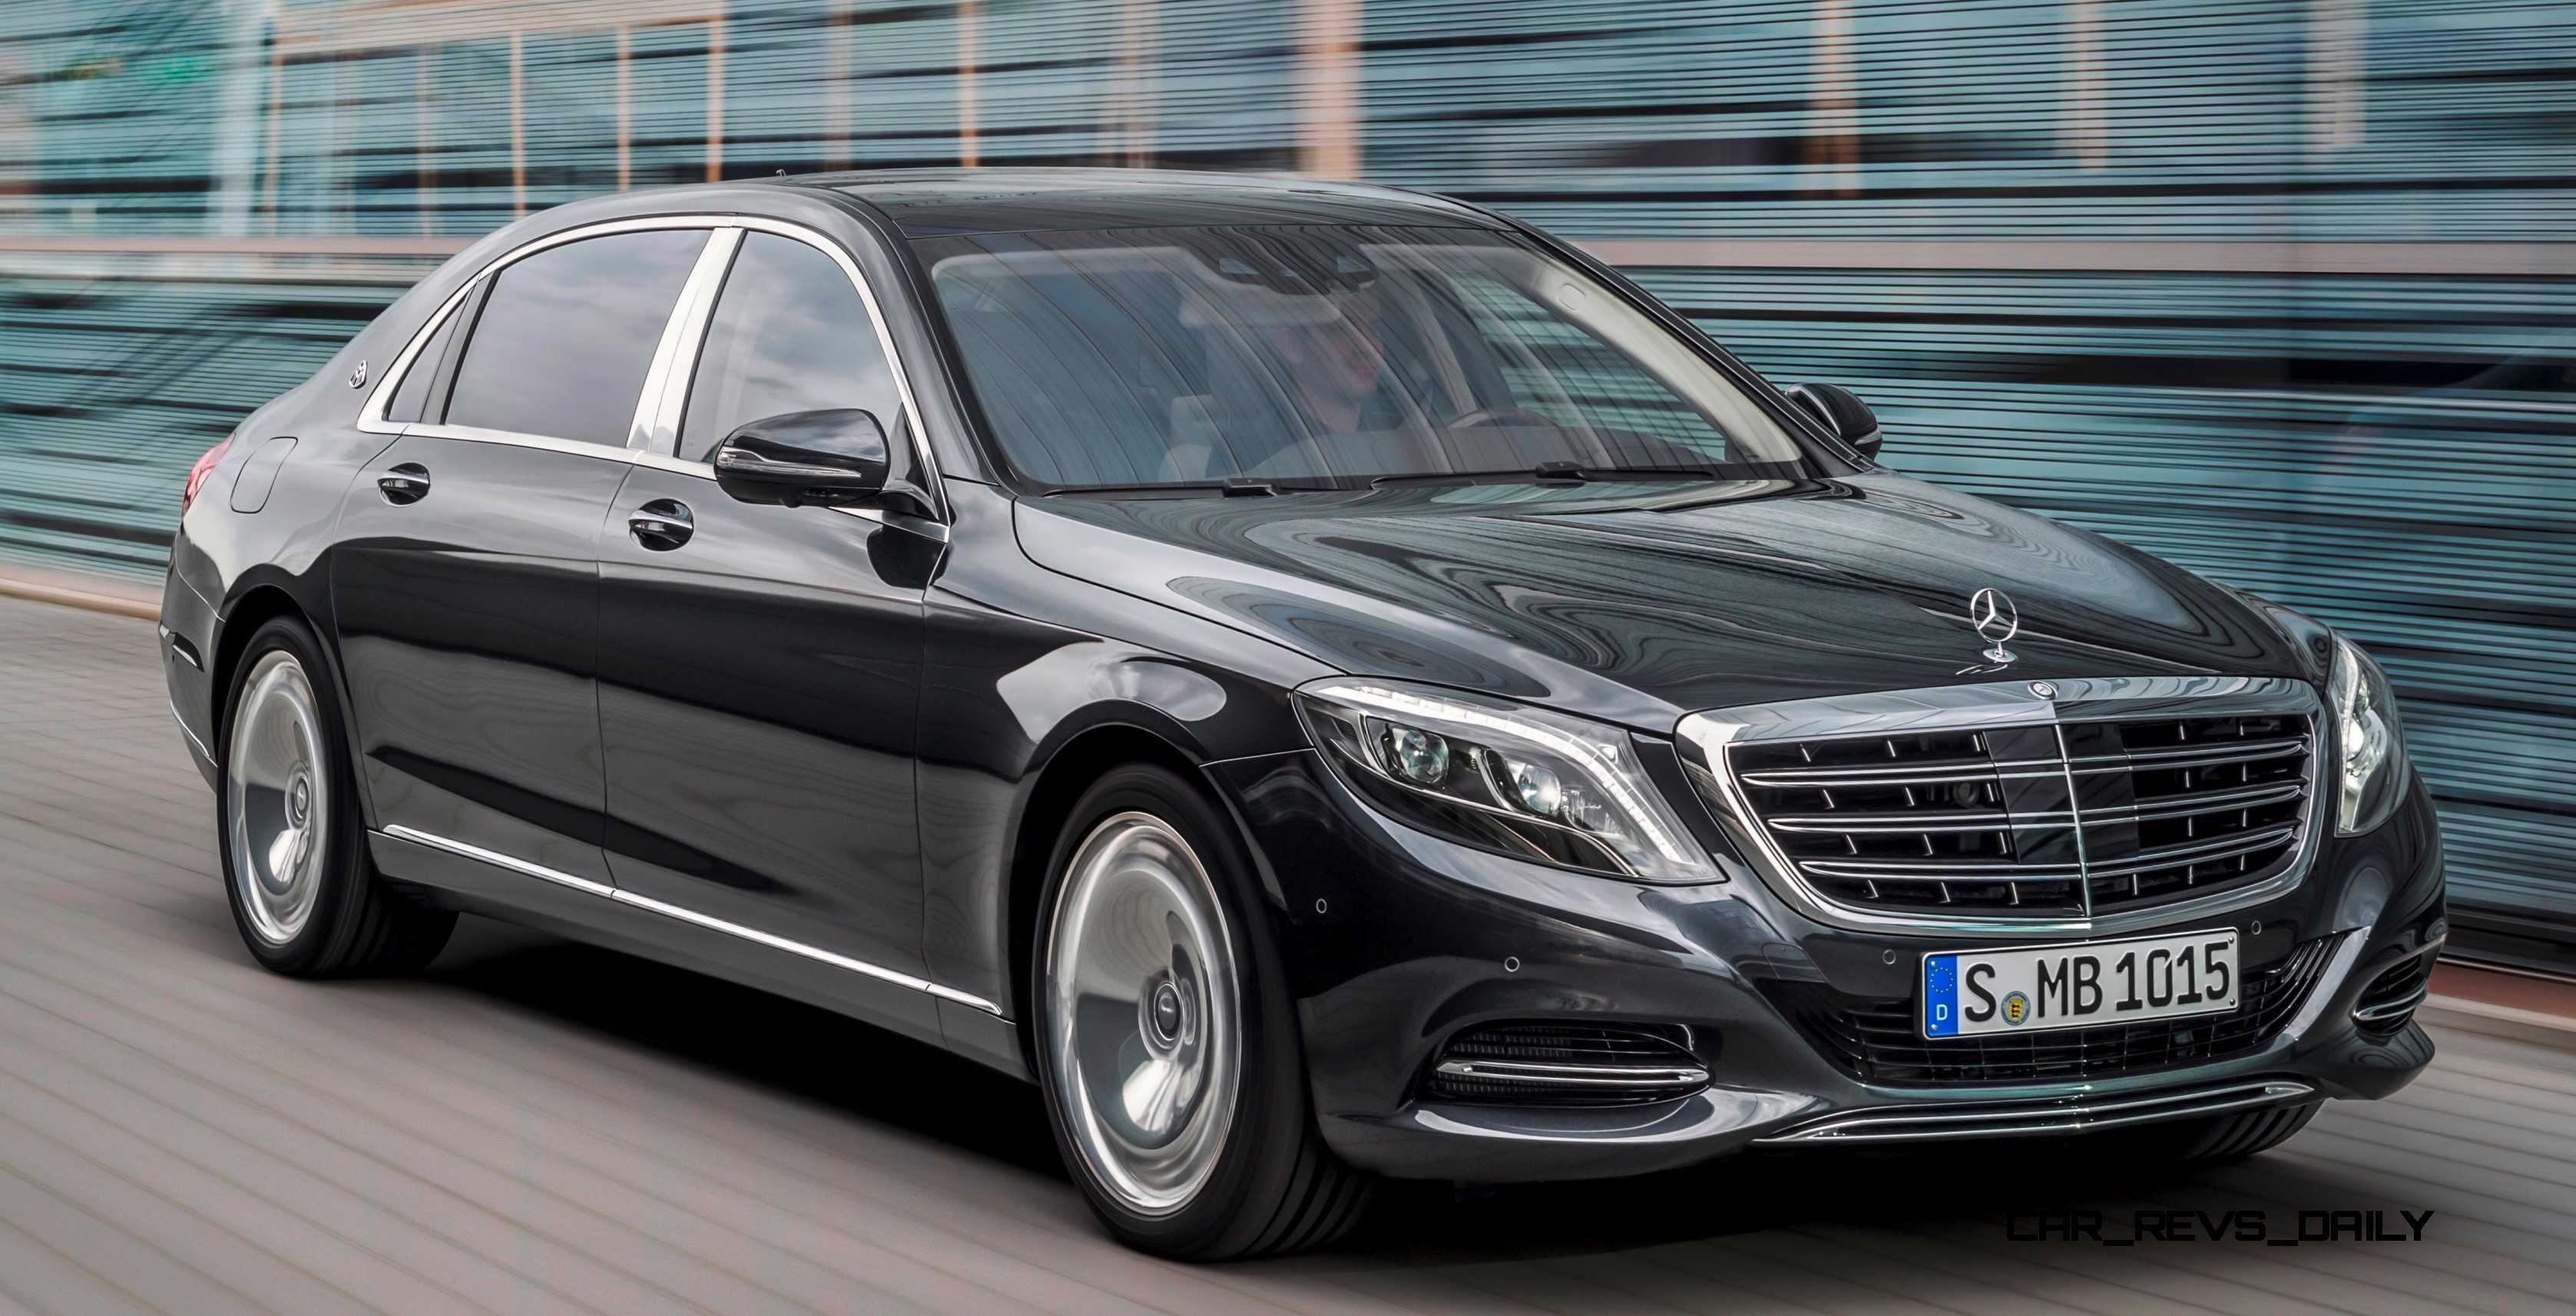 exterior profile 2015 mercedes maybach s600 5379 cars performance reviews and test drive